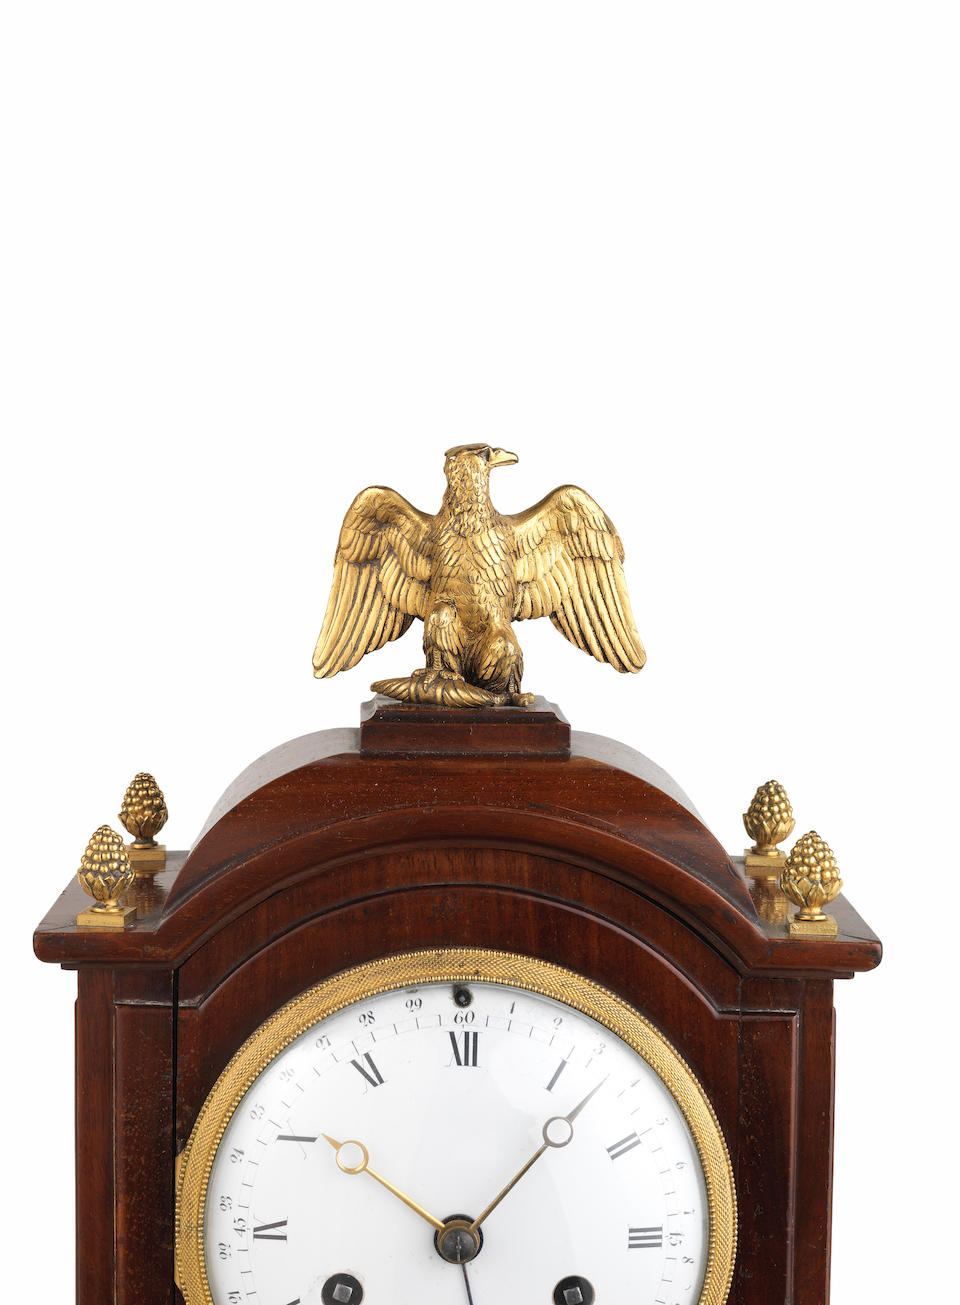 An early 19th century mahogany table clock with moonphase indication Robin, de la Societe des Inventions de France